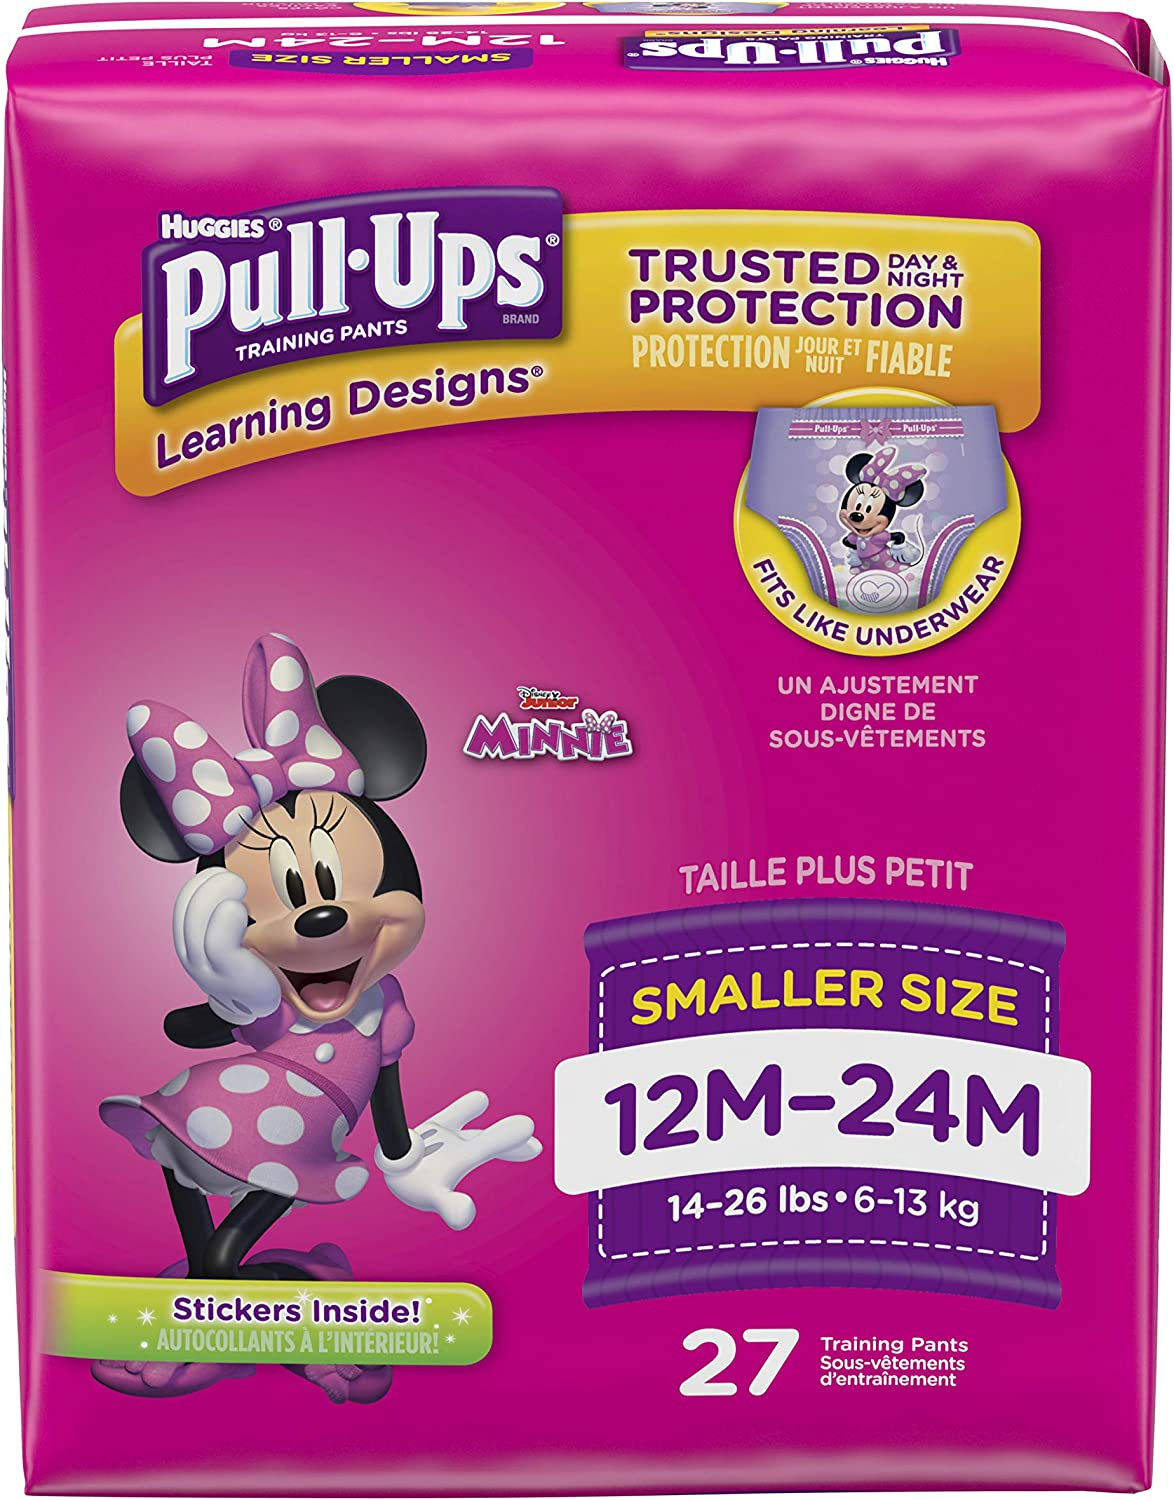 Pull-Ups Learning Designs for Girls Potty Training Pants, 12M-24M(14-26 lbs.), 27 Ct. (Packaging May Vary)